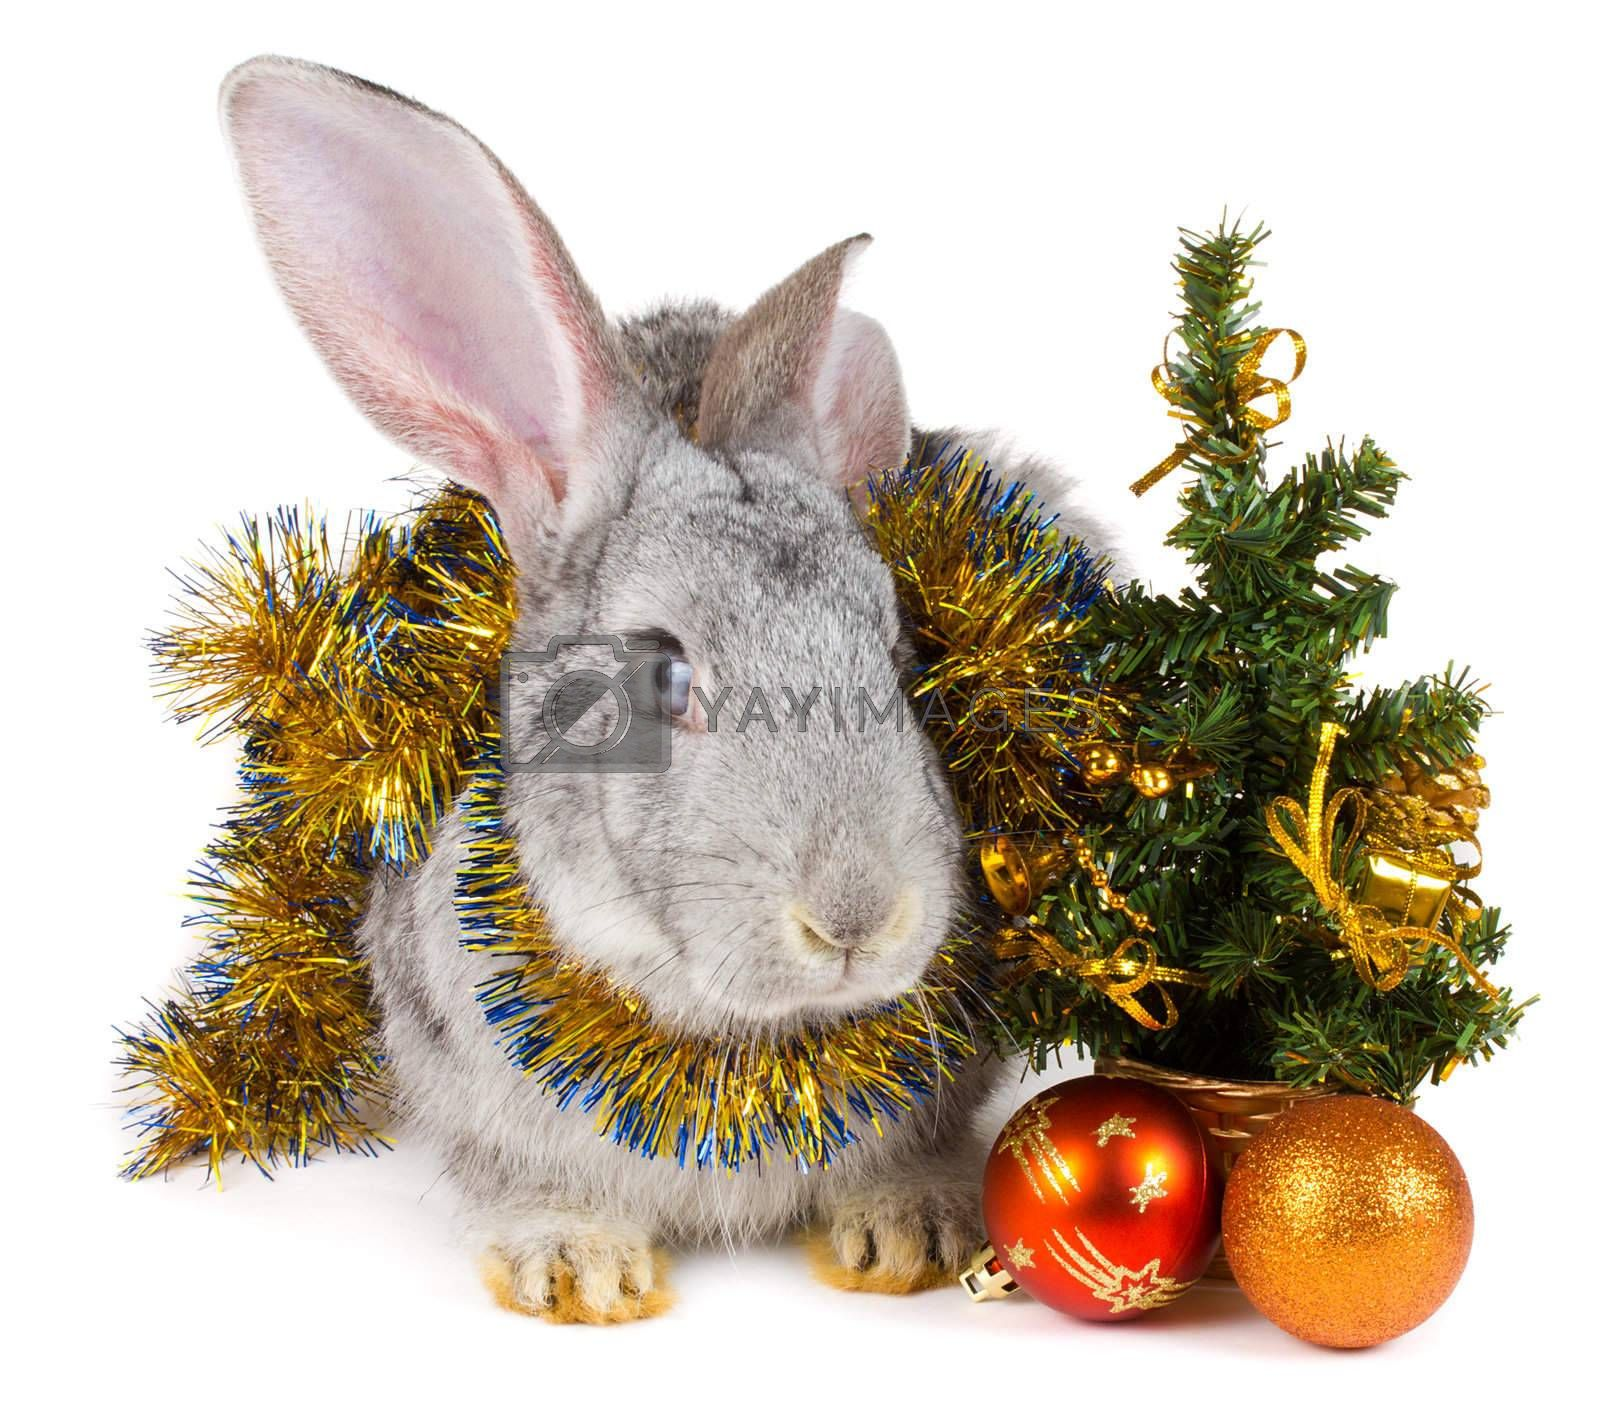 close-up rabbit and christmas decorations, isolated on white